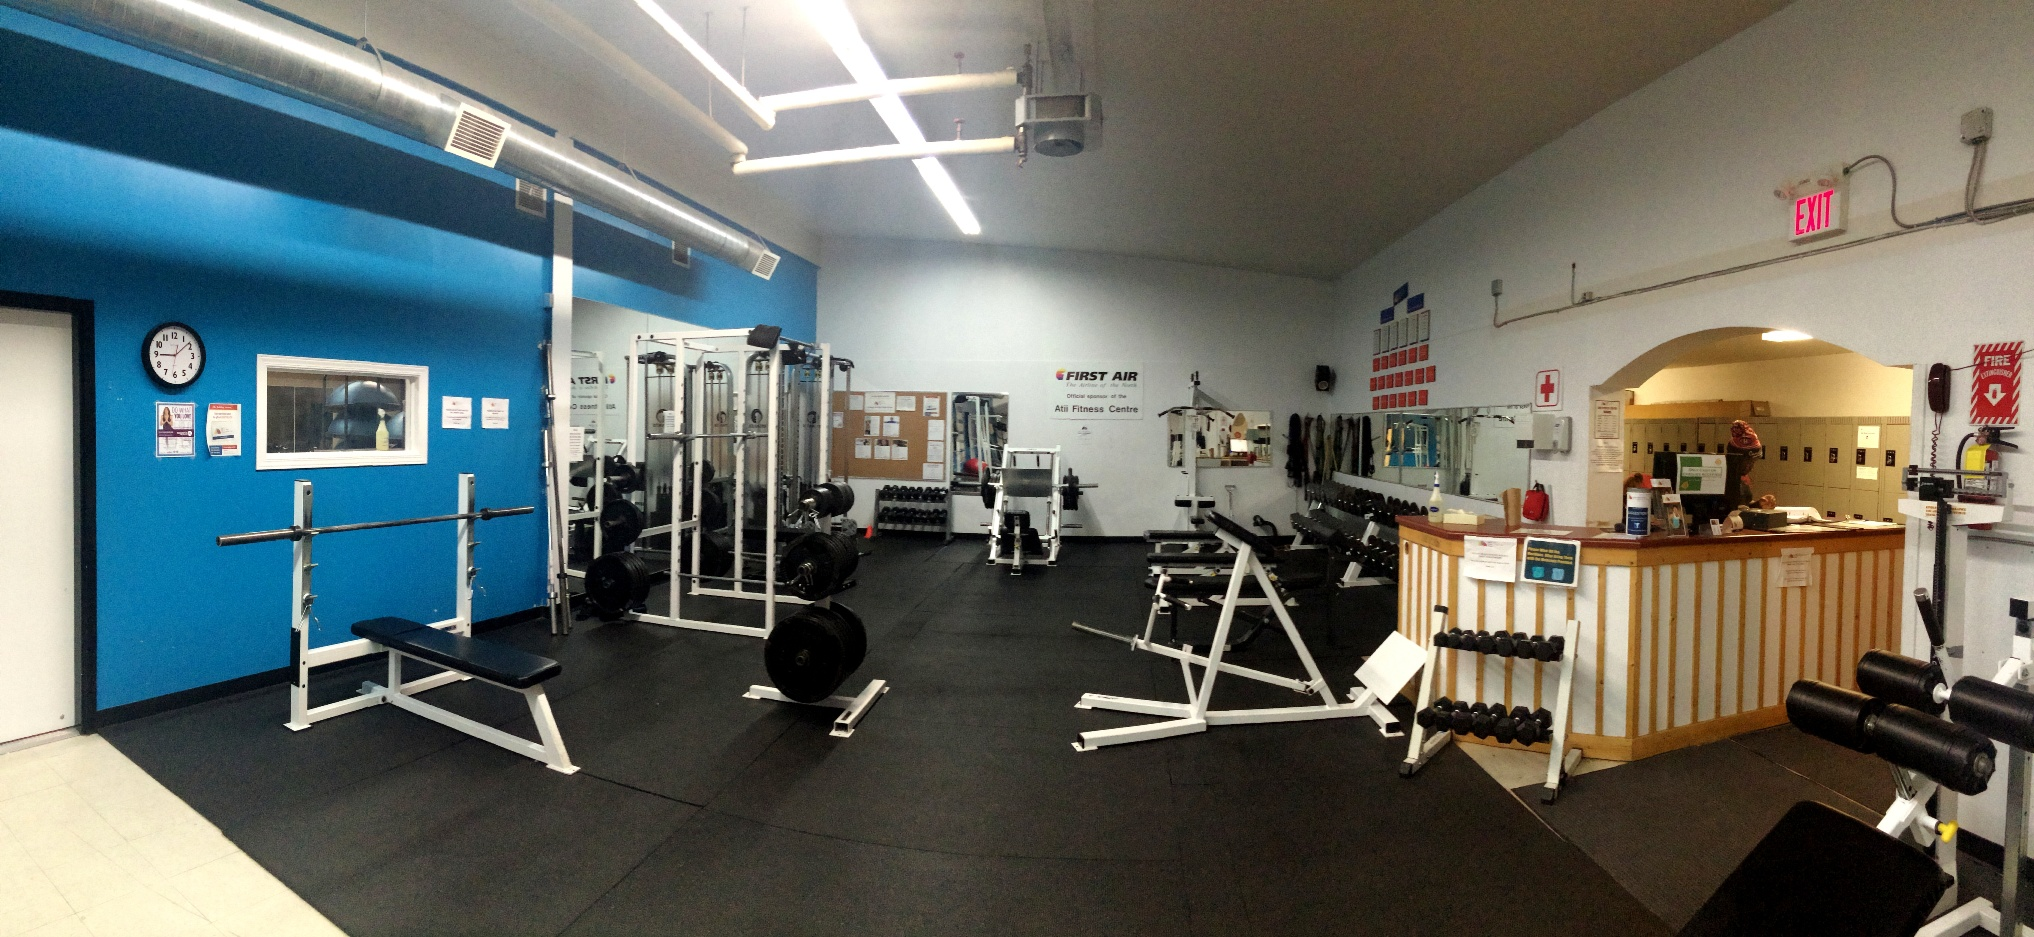 The weight section at Atii Fitness Centre in Iqaluit.